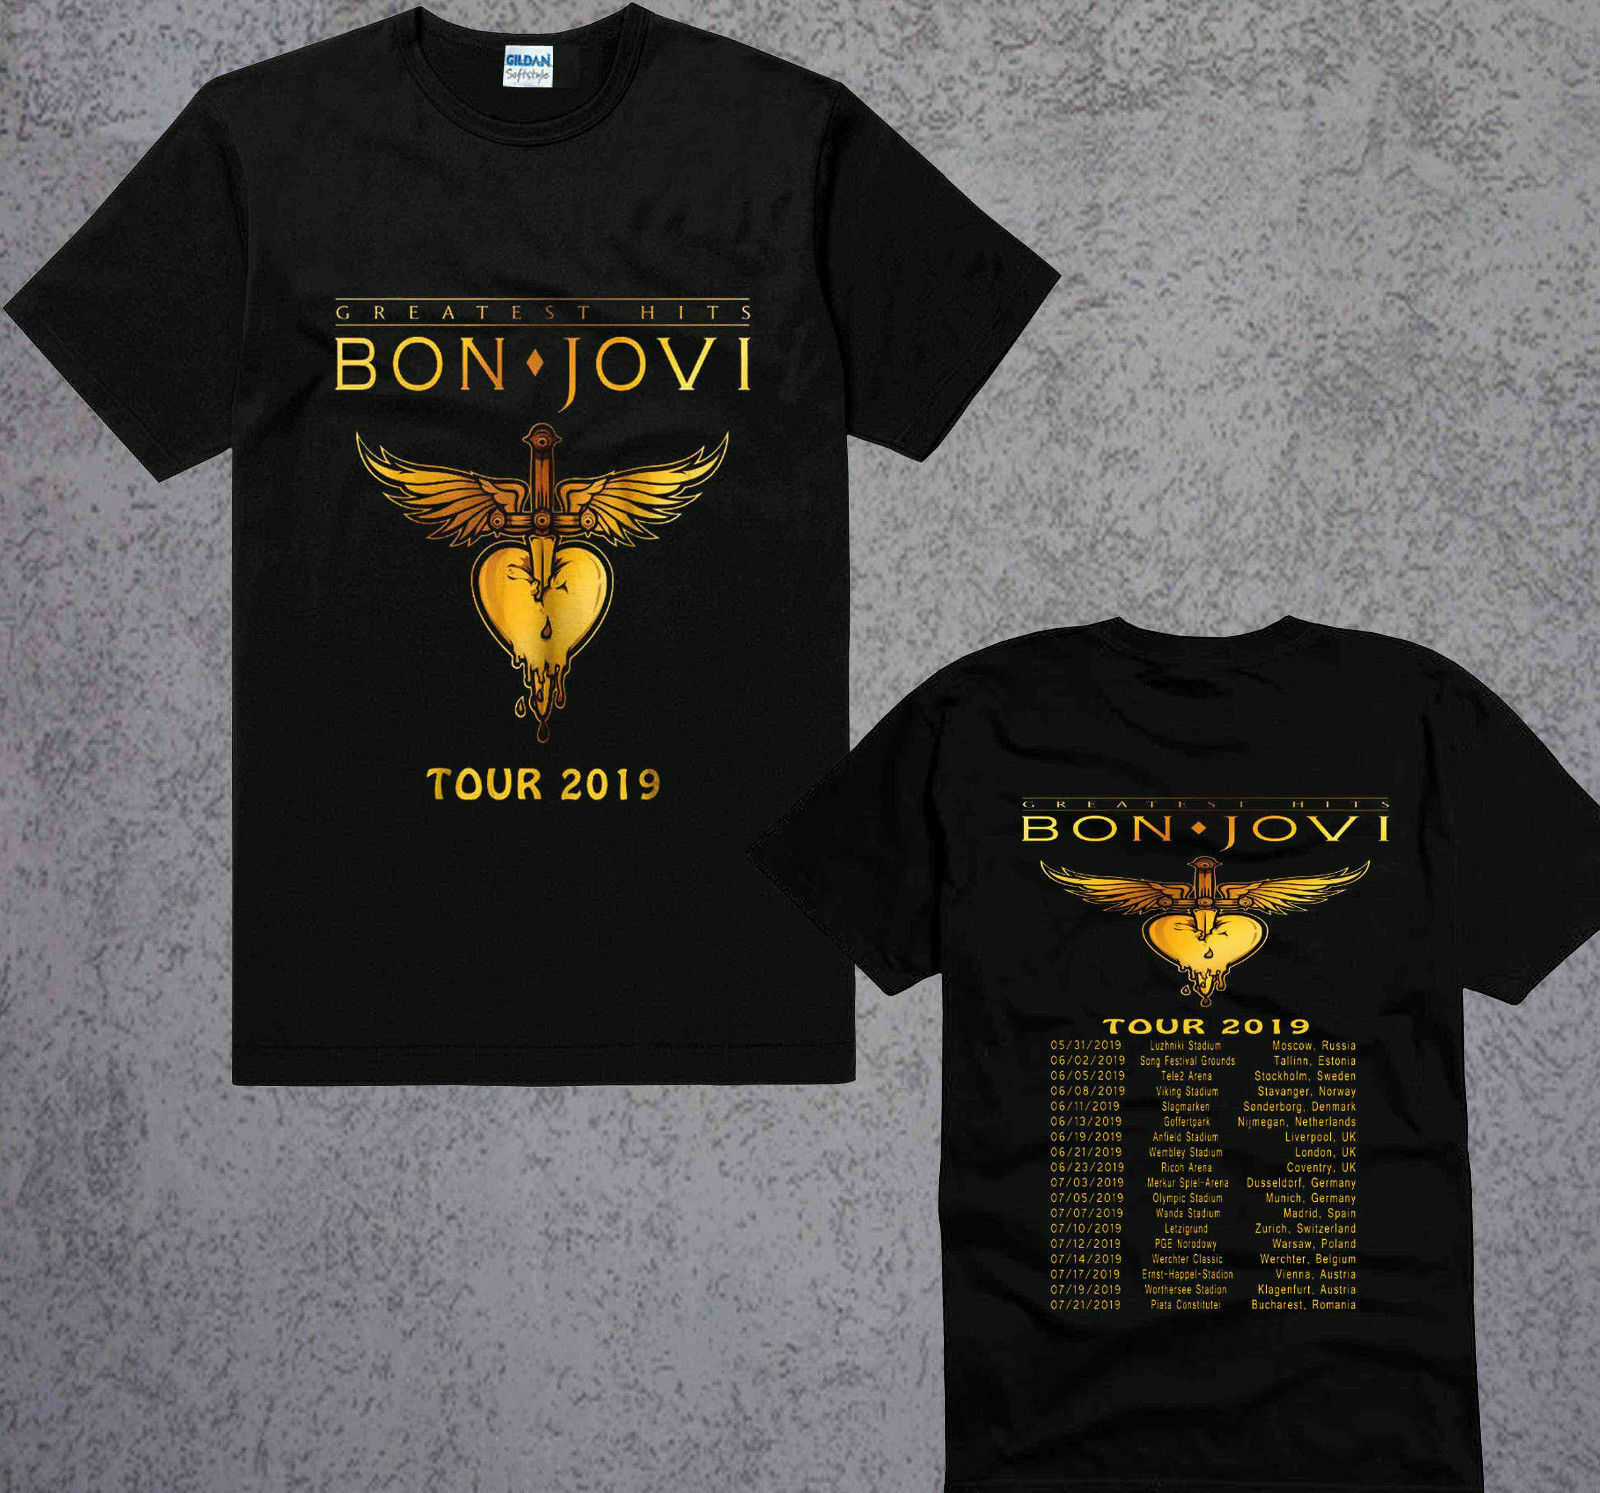 New Bon Jovi The Ressurection Music World Tour 2019 Black   T  -  Shirt   S To 3XL Summer Short Sleeves Cotton   T     Shirt   Fashion